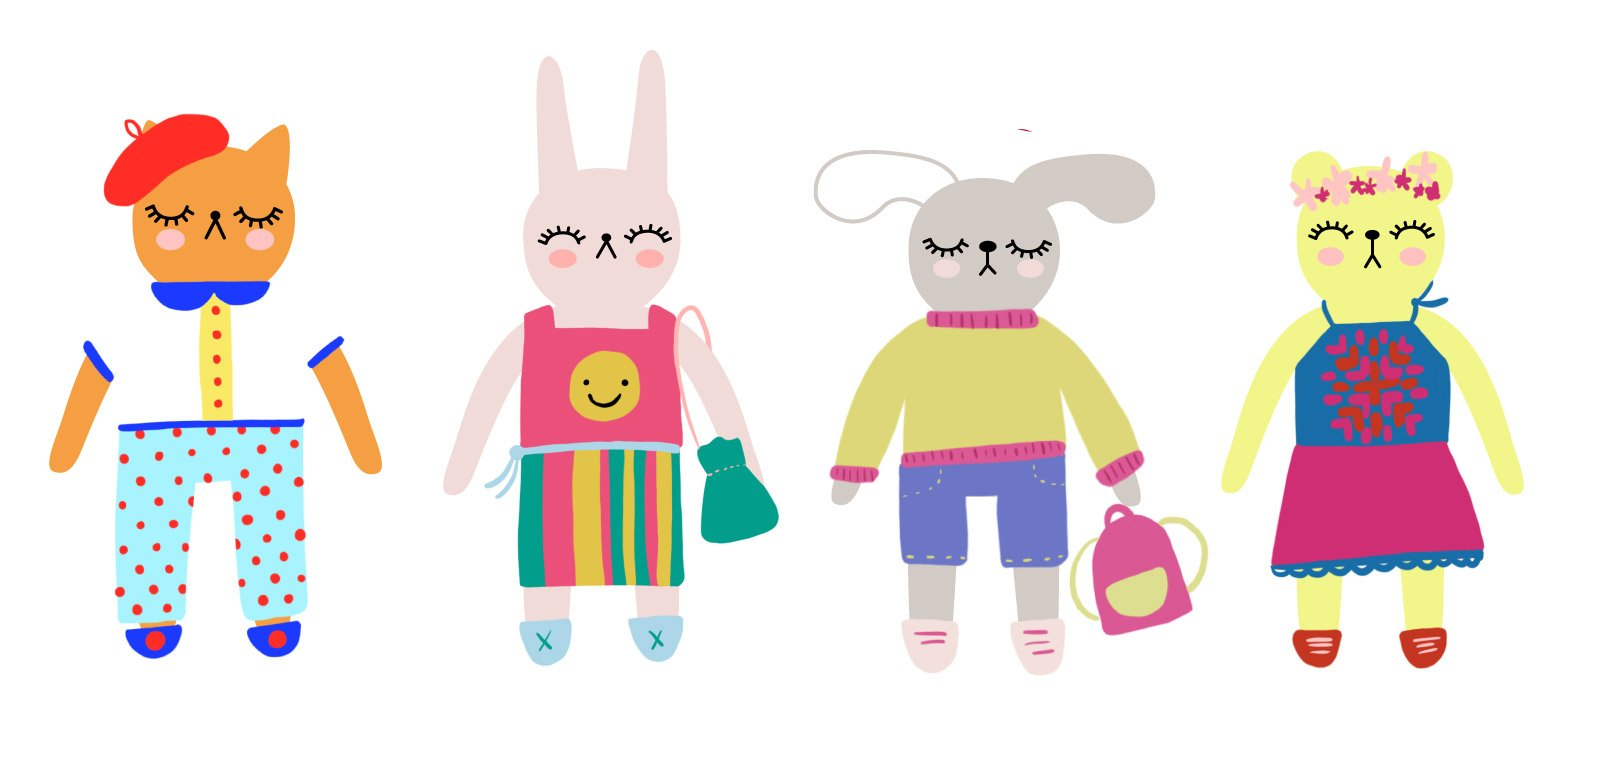 Digital illustrations of a cute Cat, Bunny, Dog, and Bear wearing outfits.